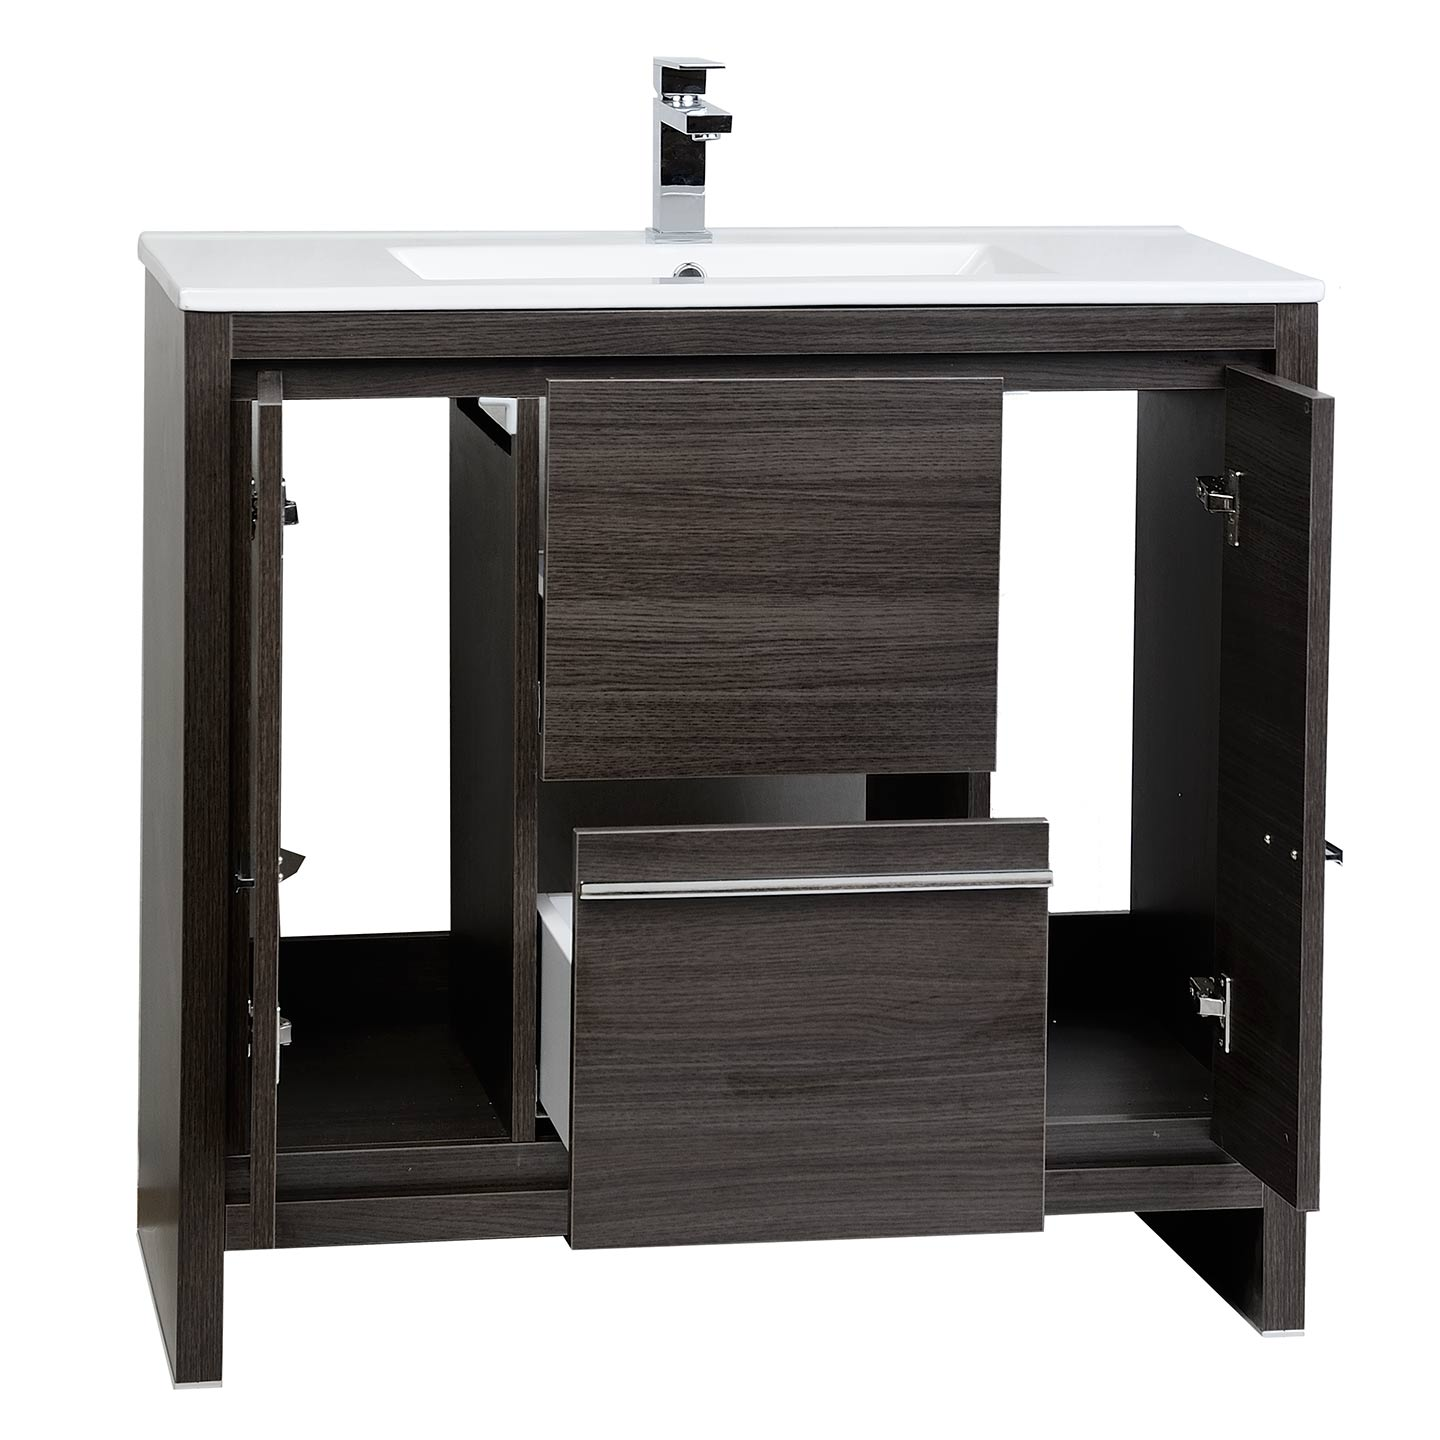 acacia sink celebration cabinet bathroom vanity console rustic vessel